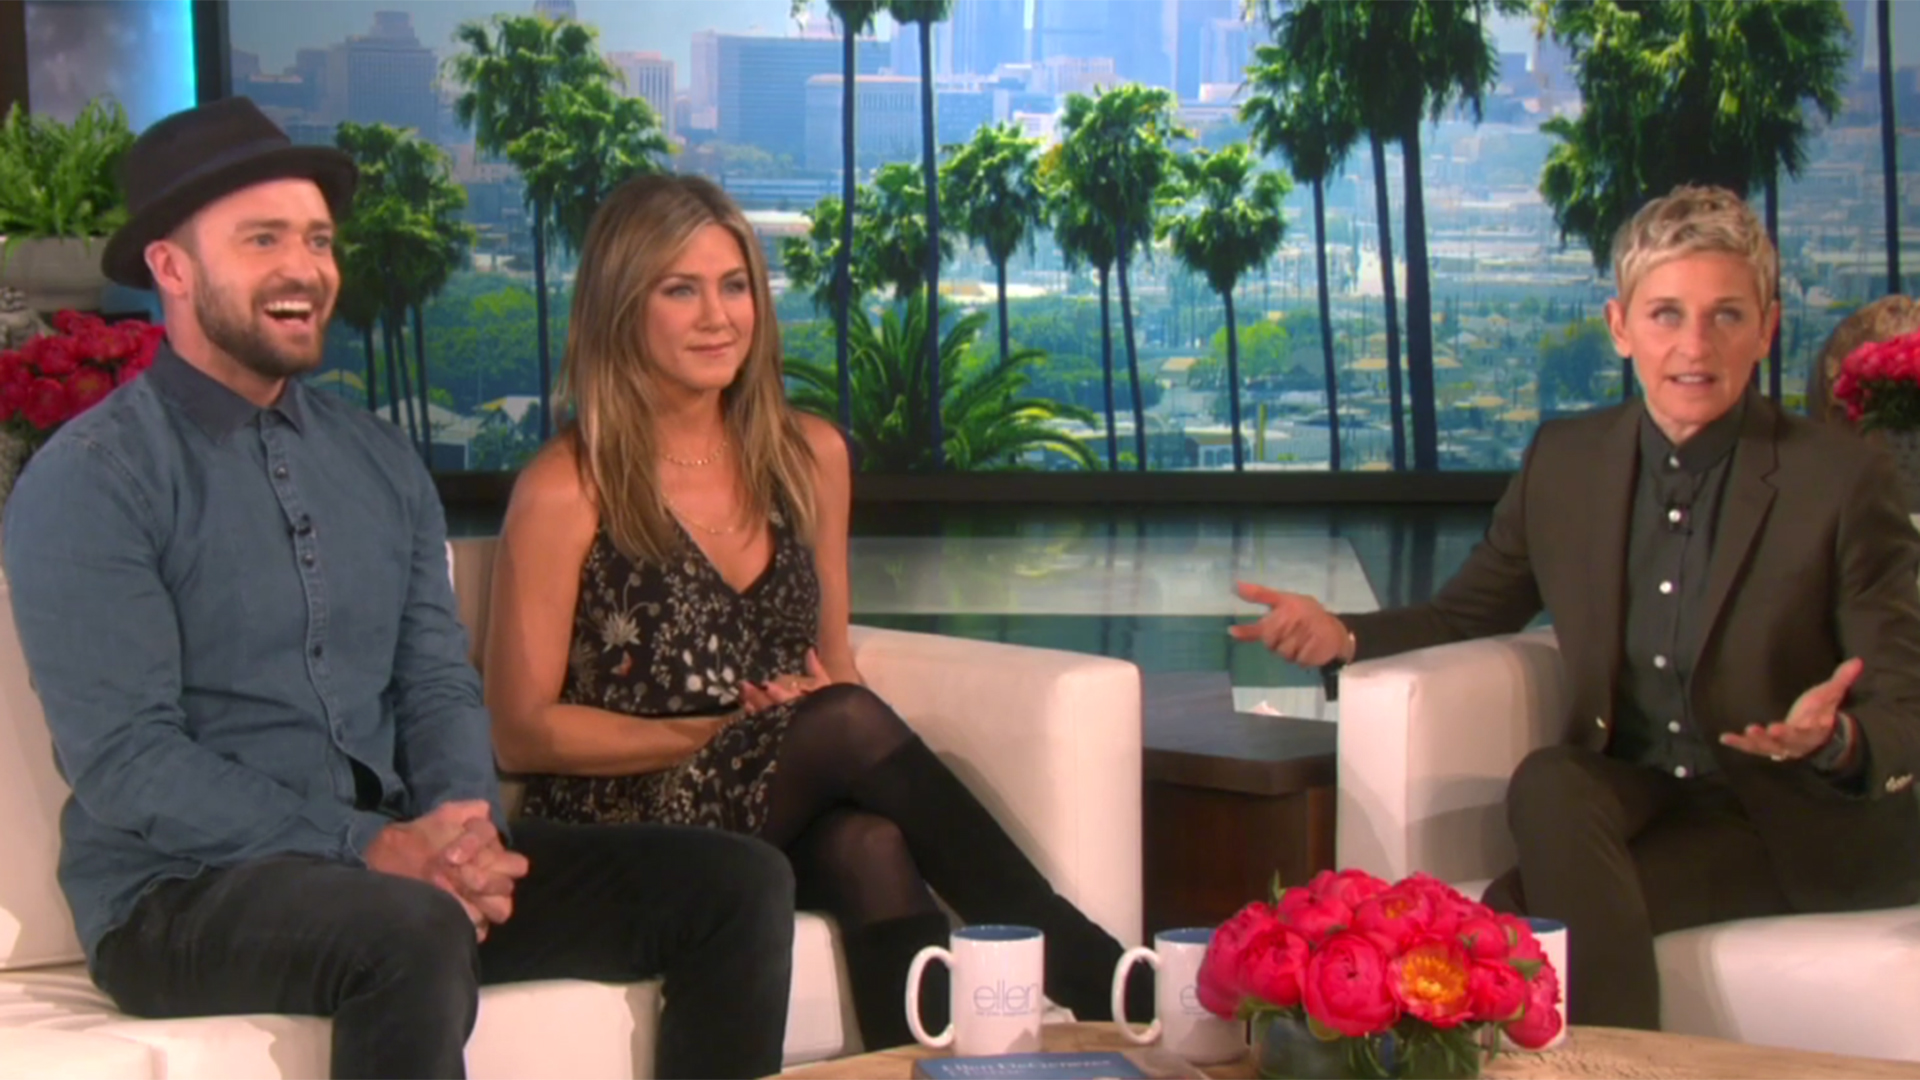 Jennifer aniston justin timberlake surprise ellen degeneres on her 2 000th show - Ellen show videos ...